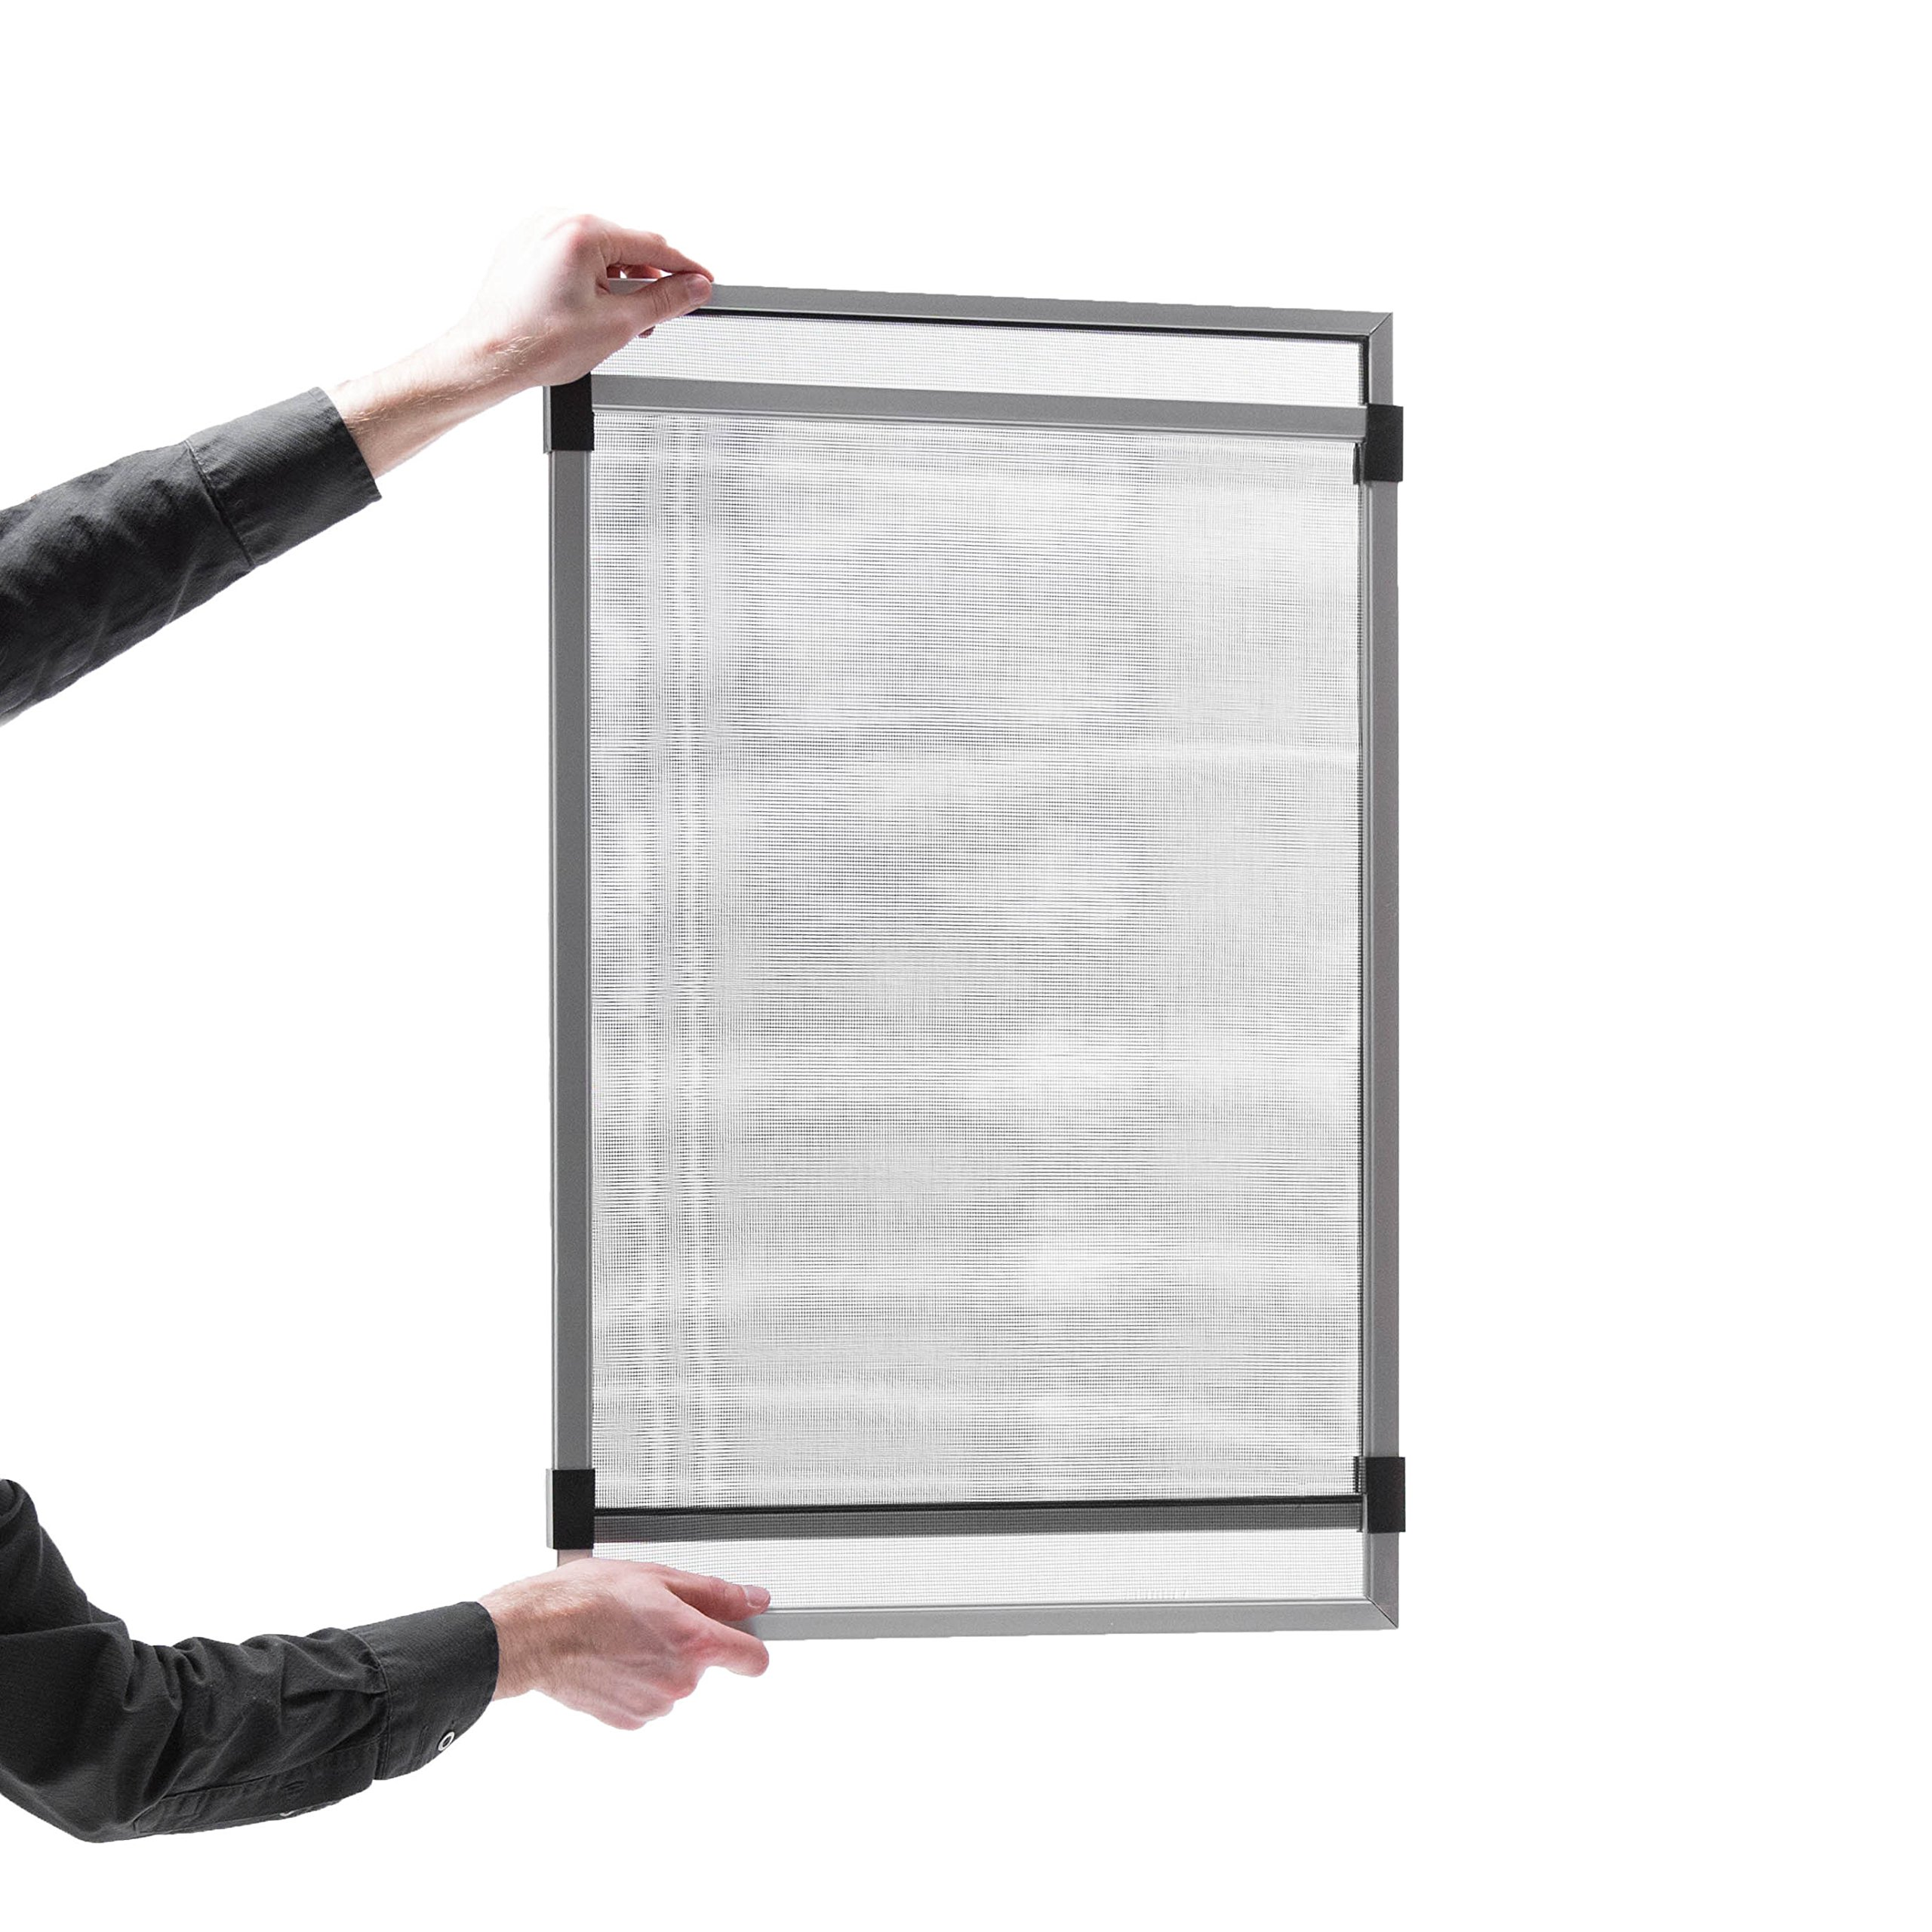 Adjustable Window Screen 18'' High x (31 3/8 x 59'') White by Metro Screen Works (Image #2)